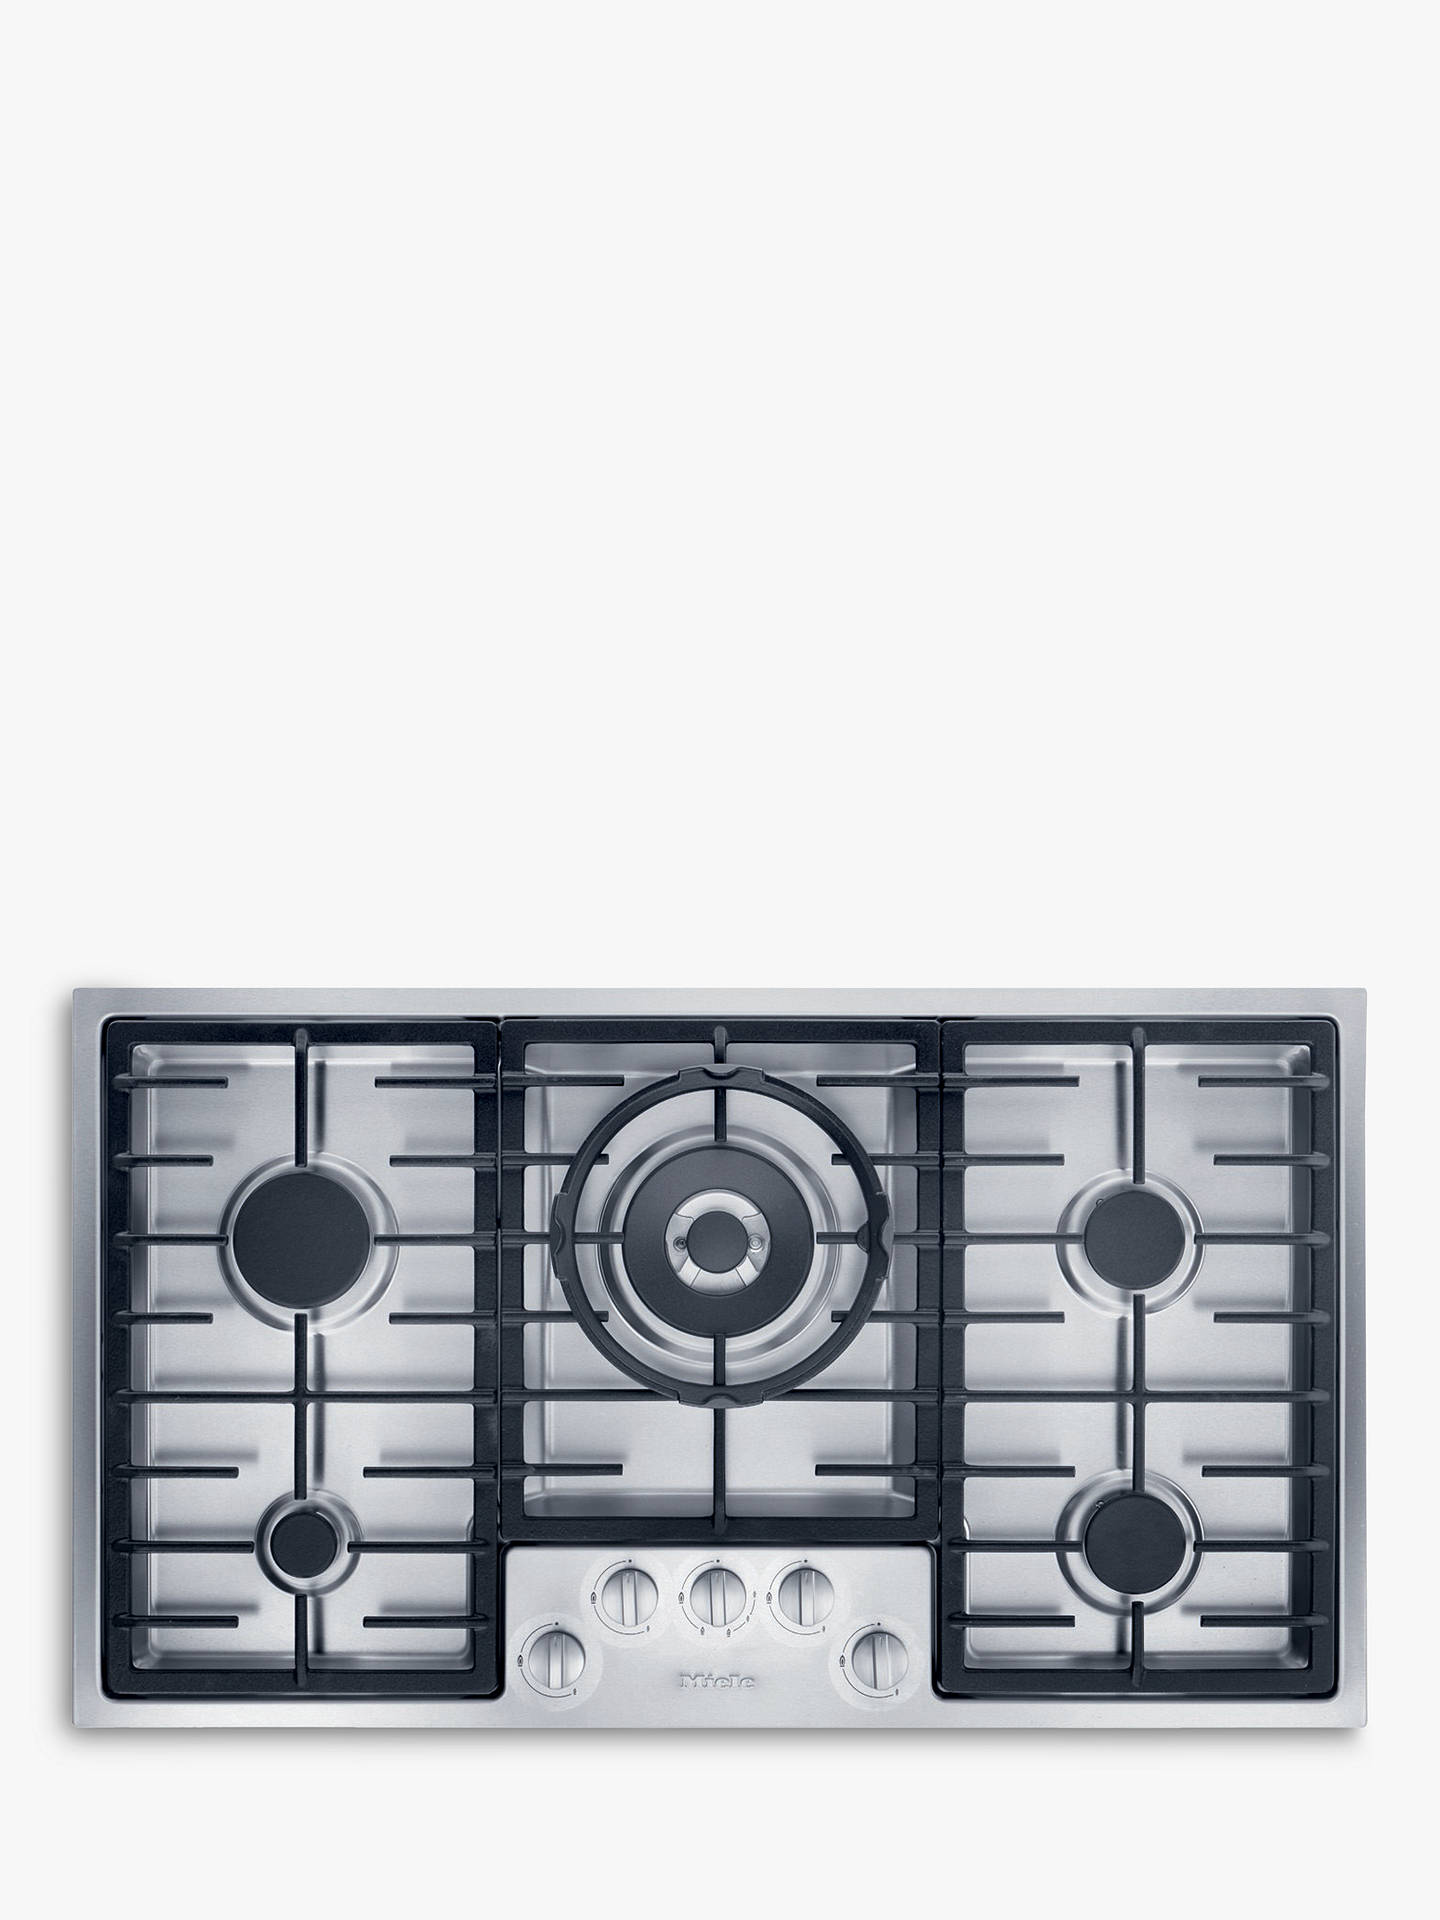 BuyMiele KM2354 Integrated Gas Hob, Stainless Steel Online at johnlewis.com